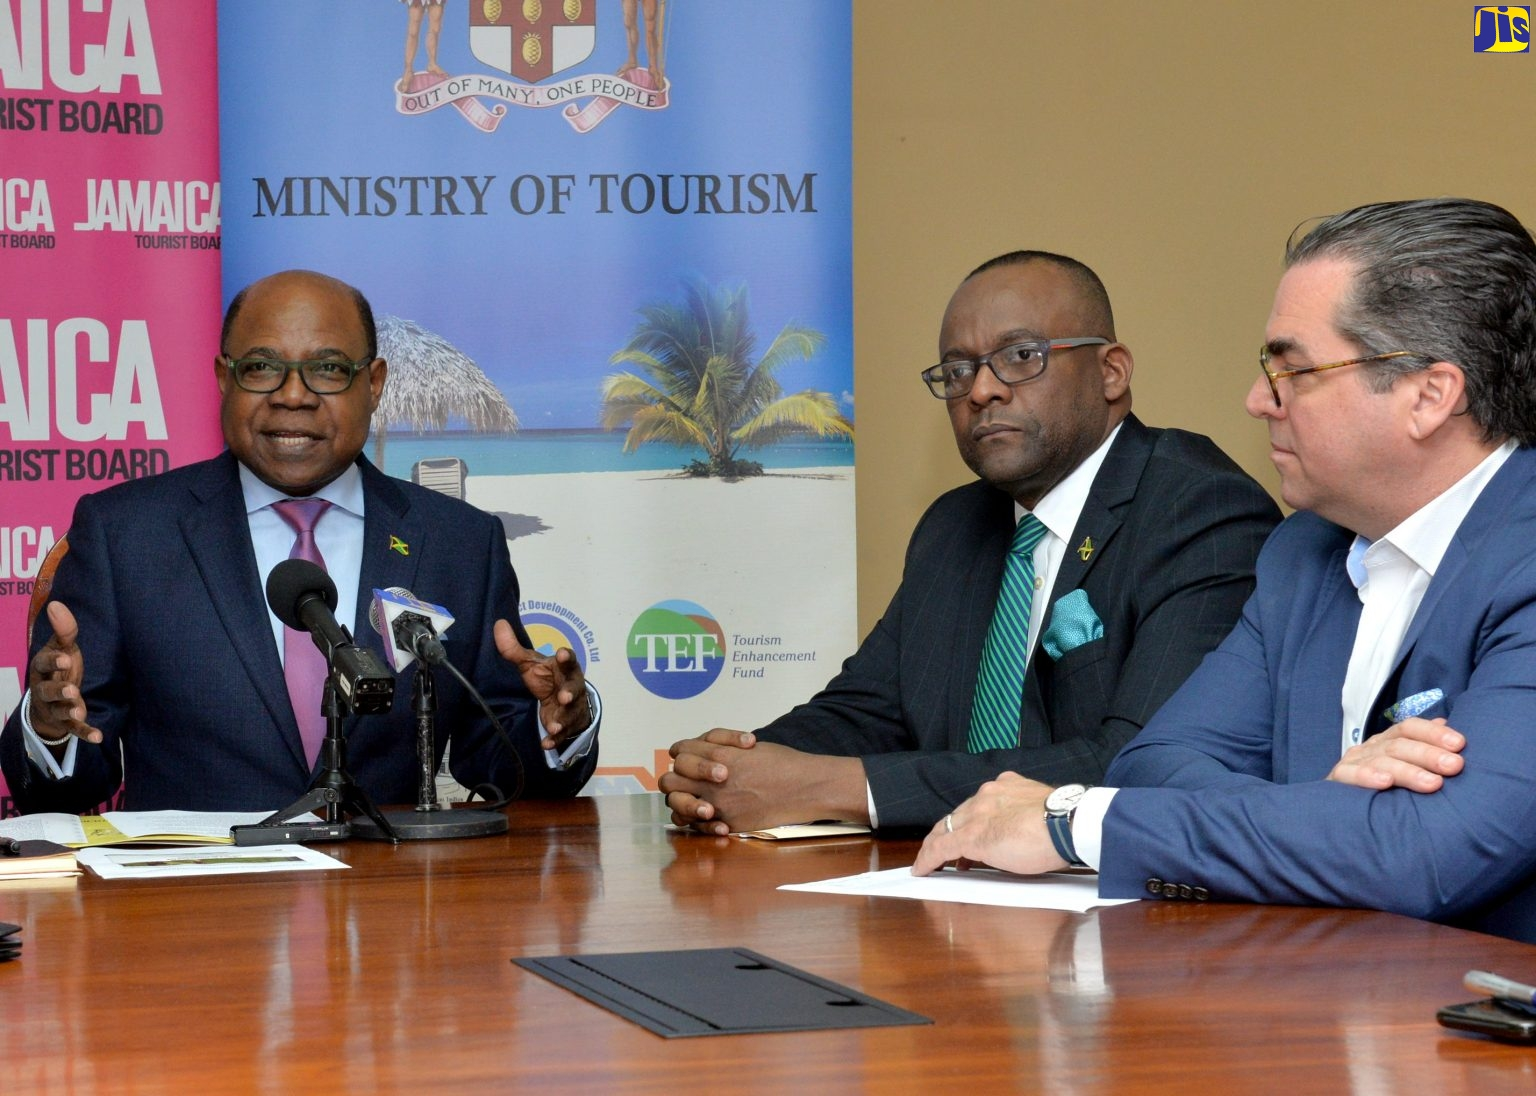 Hundreds Expected for 37th Caribbean Travel Marketplace Expo in